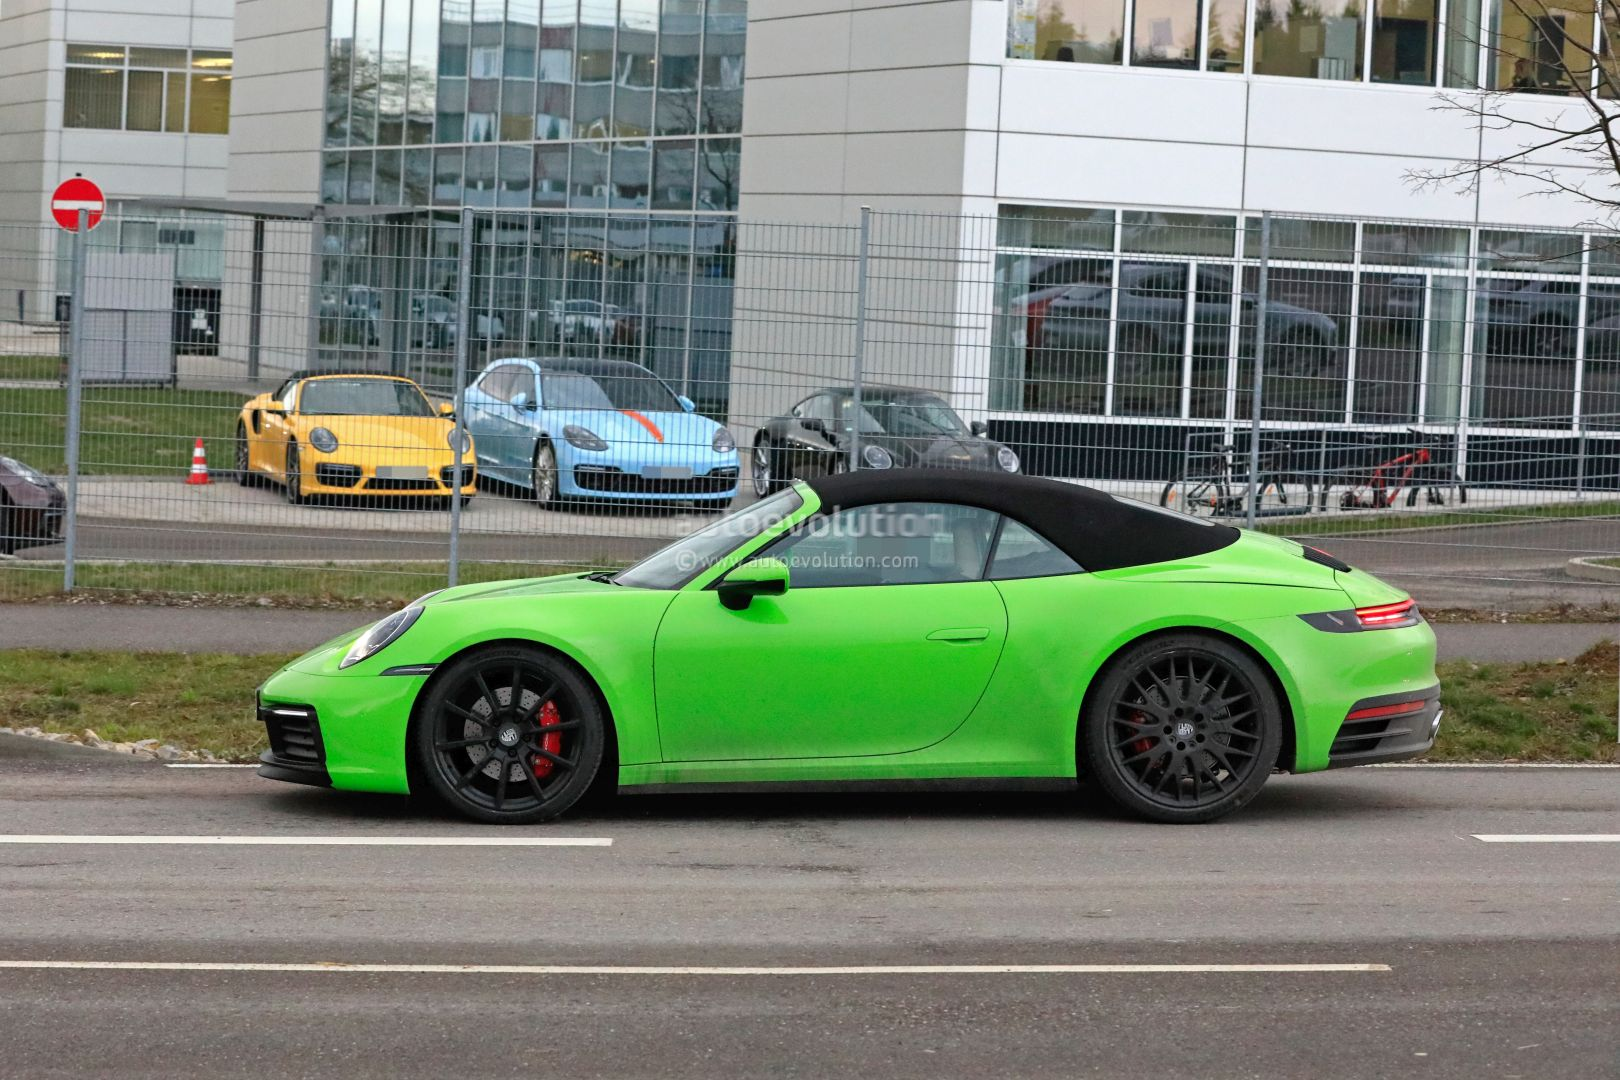 2020 Porsche 911 Cabriolet Shows New Roof Gt3 Cabriolet